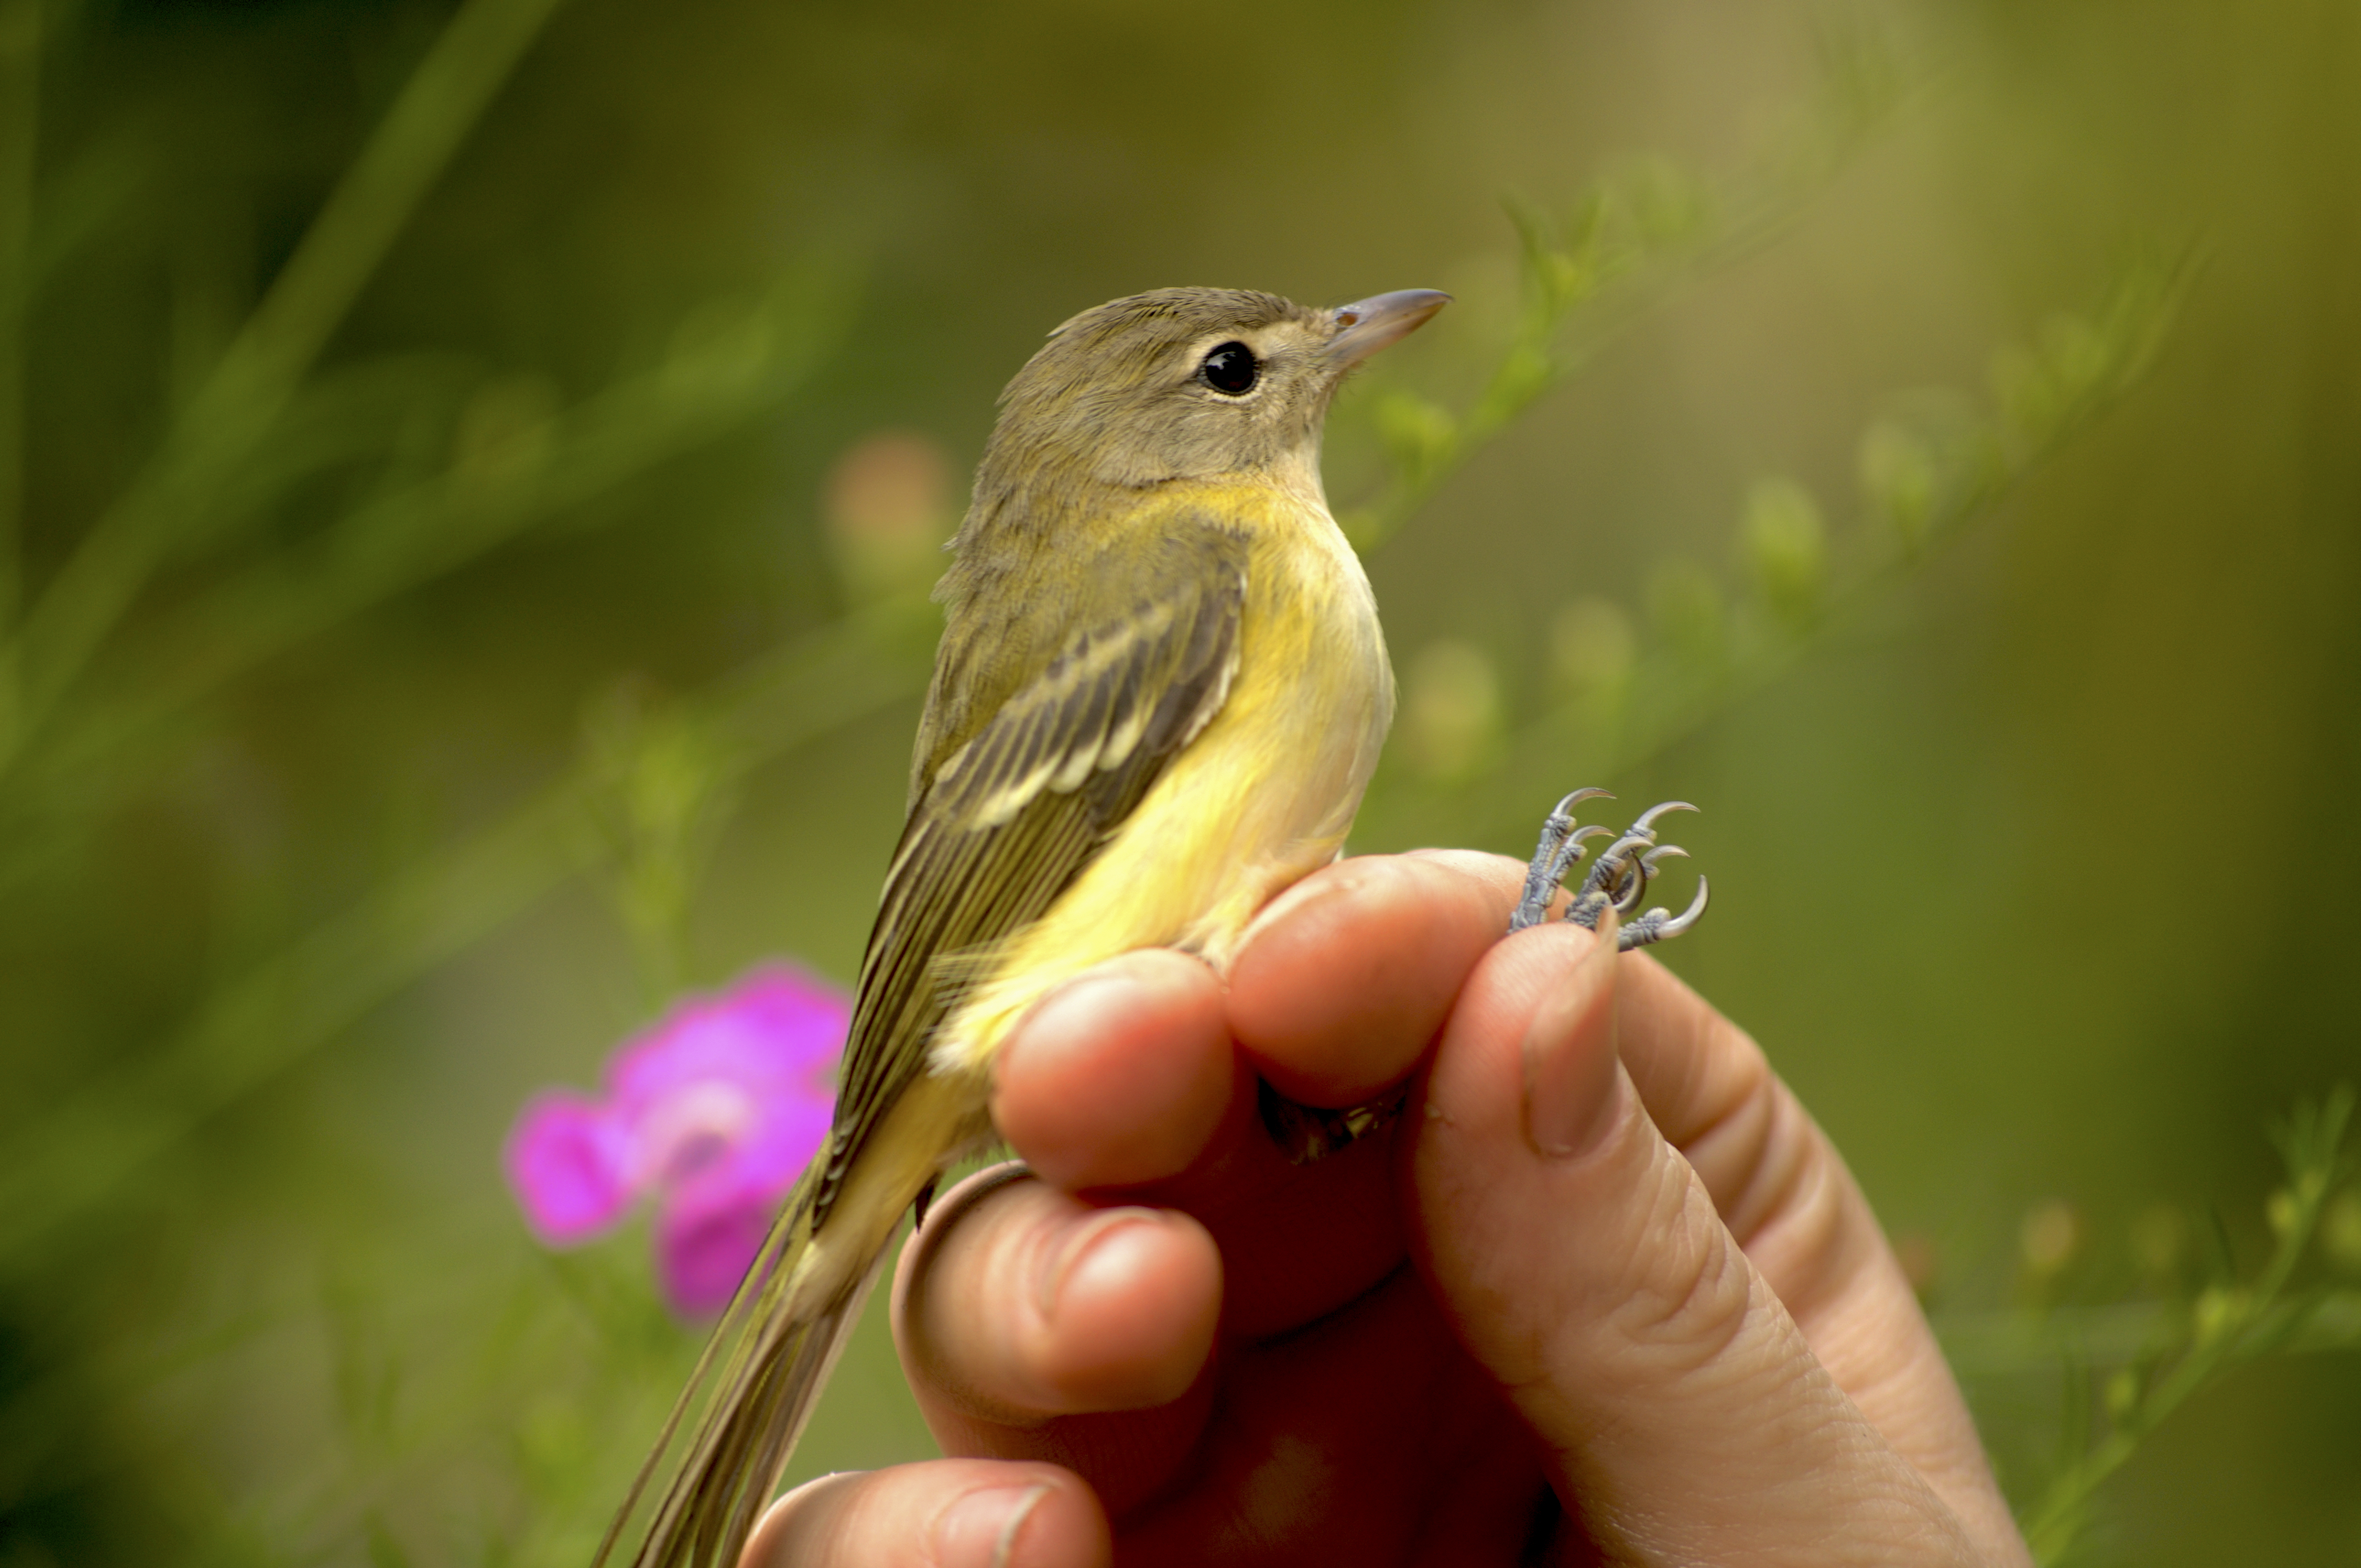 Local biologists recently discovered the migratory bird Bell's Vireo on Sullivan's Island.